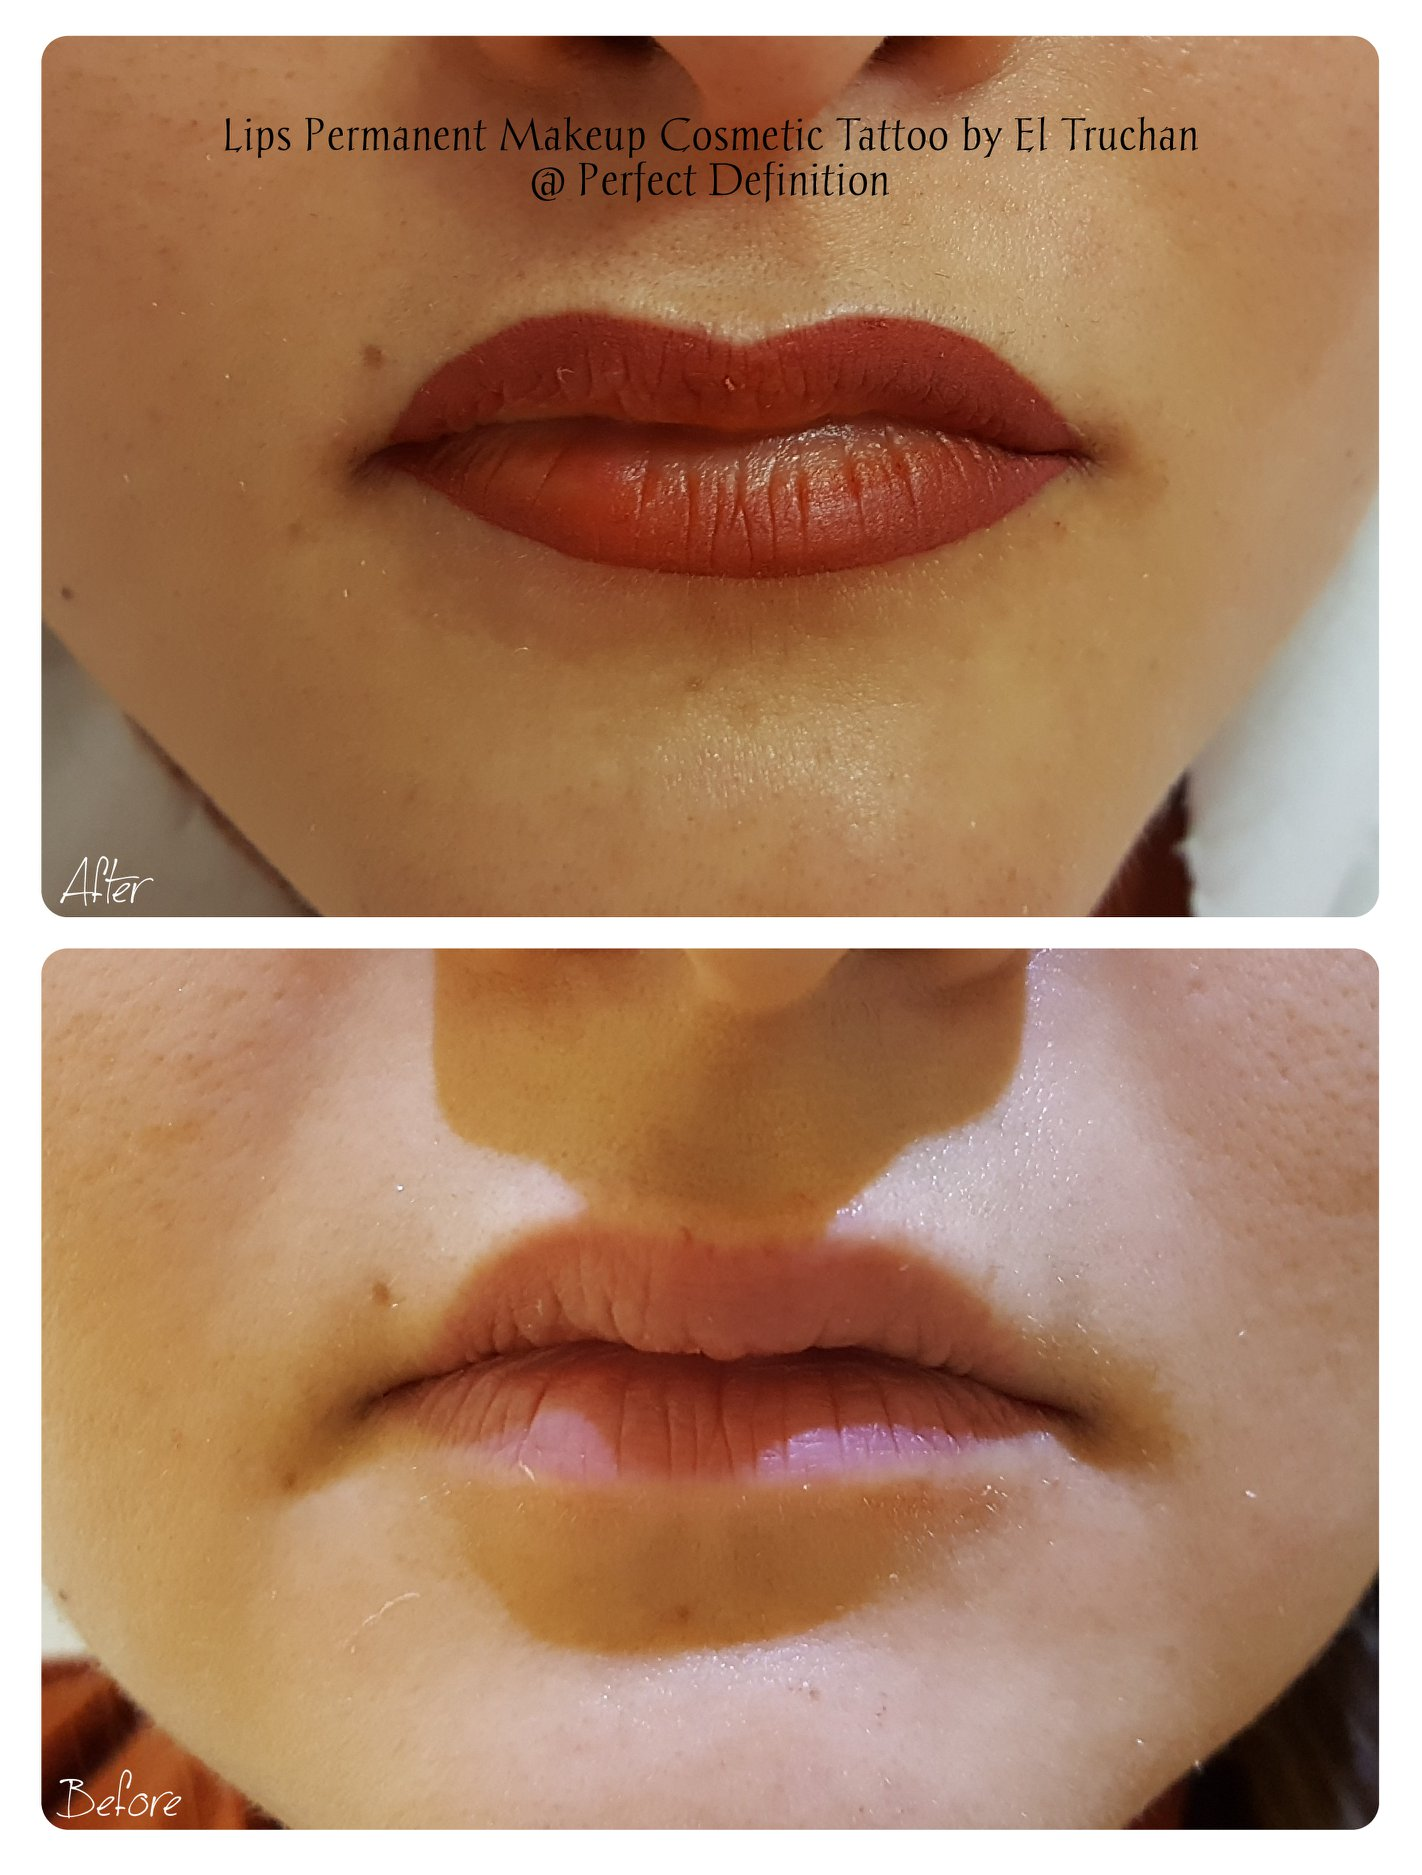 Lips Permanent Makeup Cosmetic Tattoo by